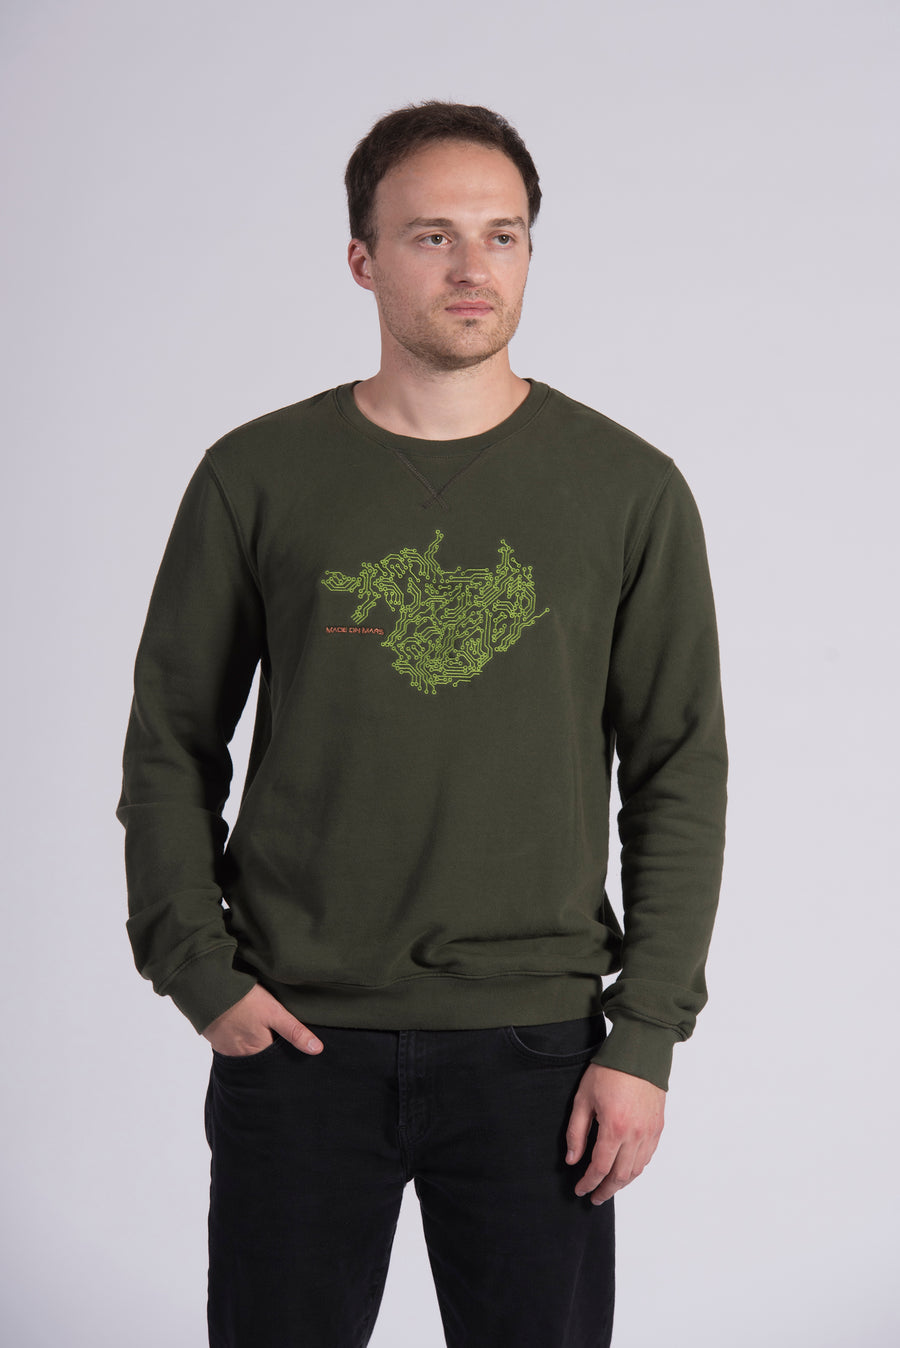 Circuit Board Embroidery Green Cotton Men's Sweatshirt Ethical